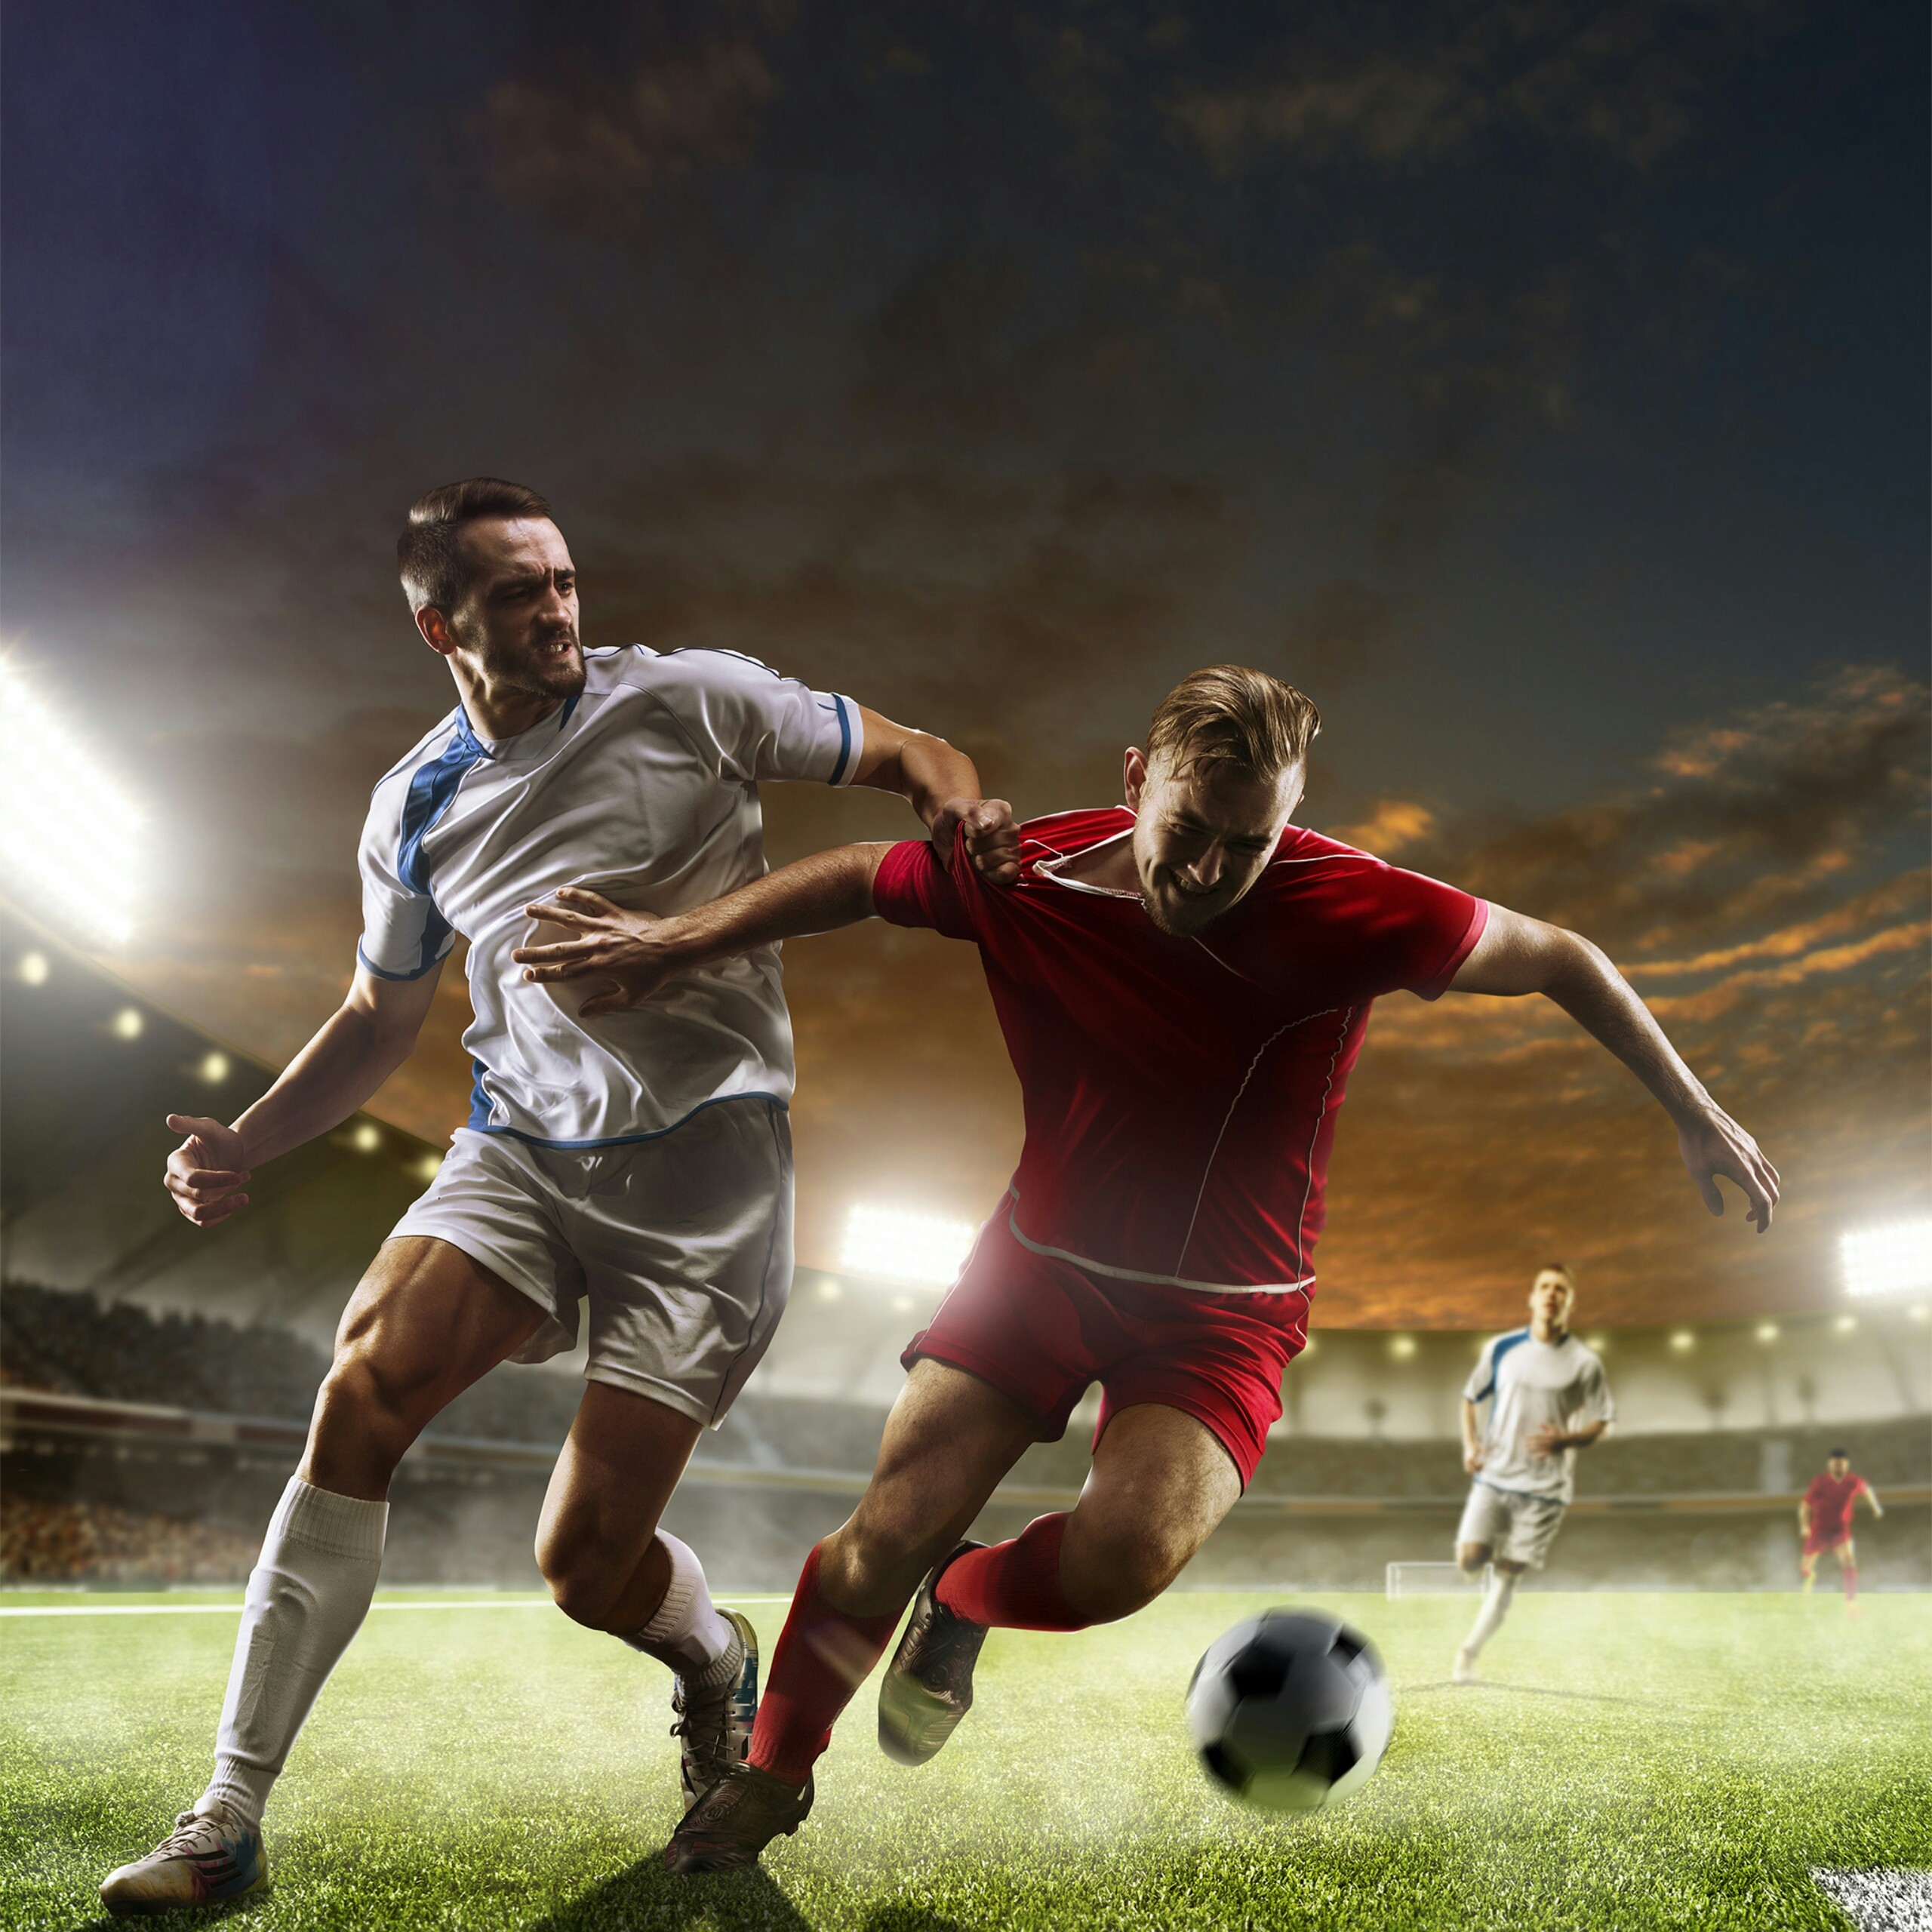 Pushing In The Field Soccer Football Players Sports QHD Wallpaper